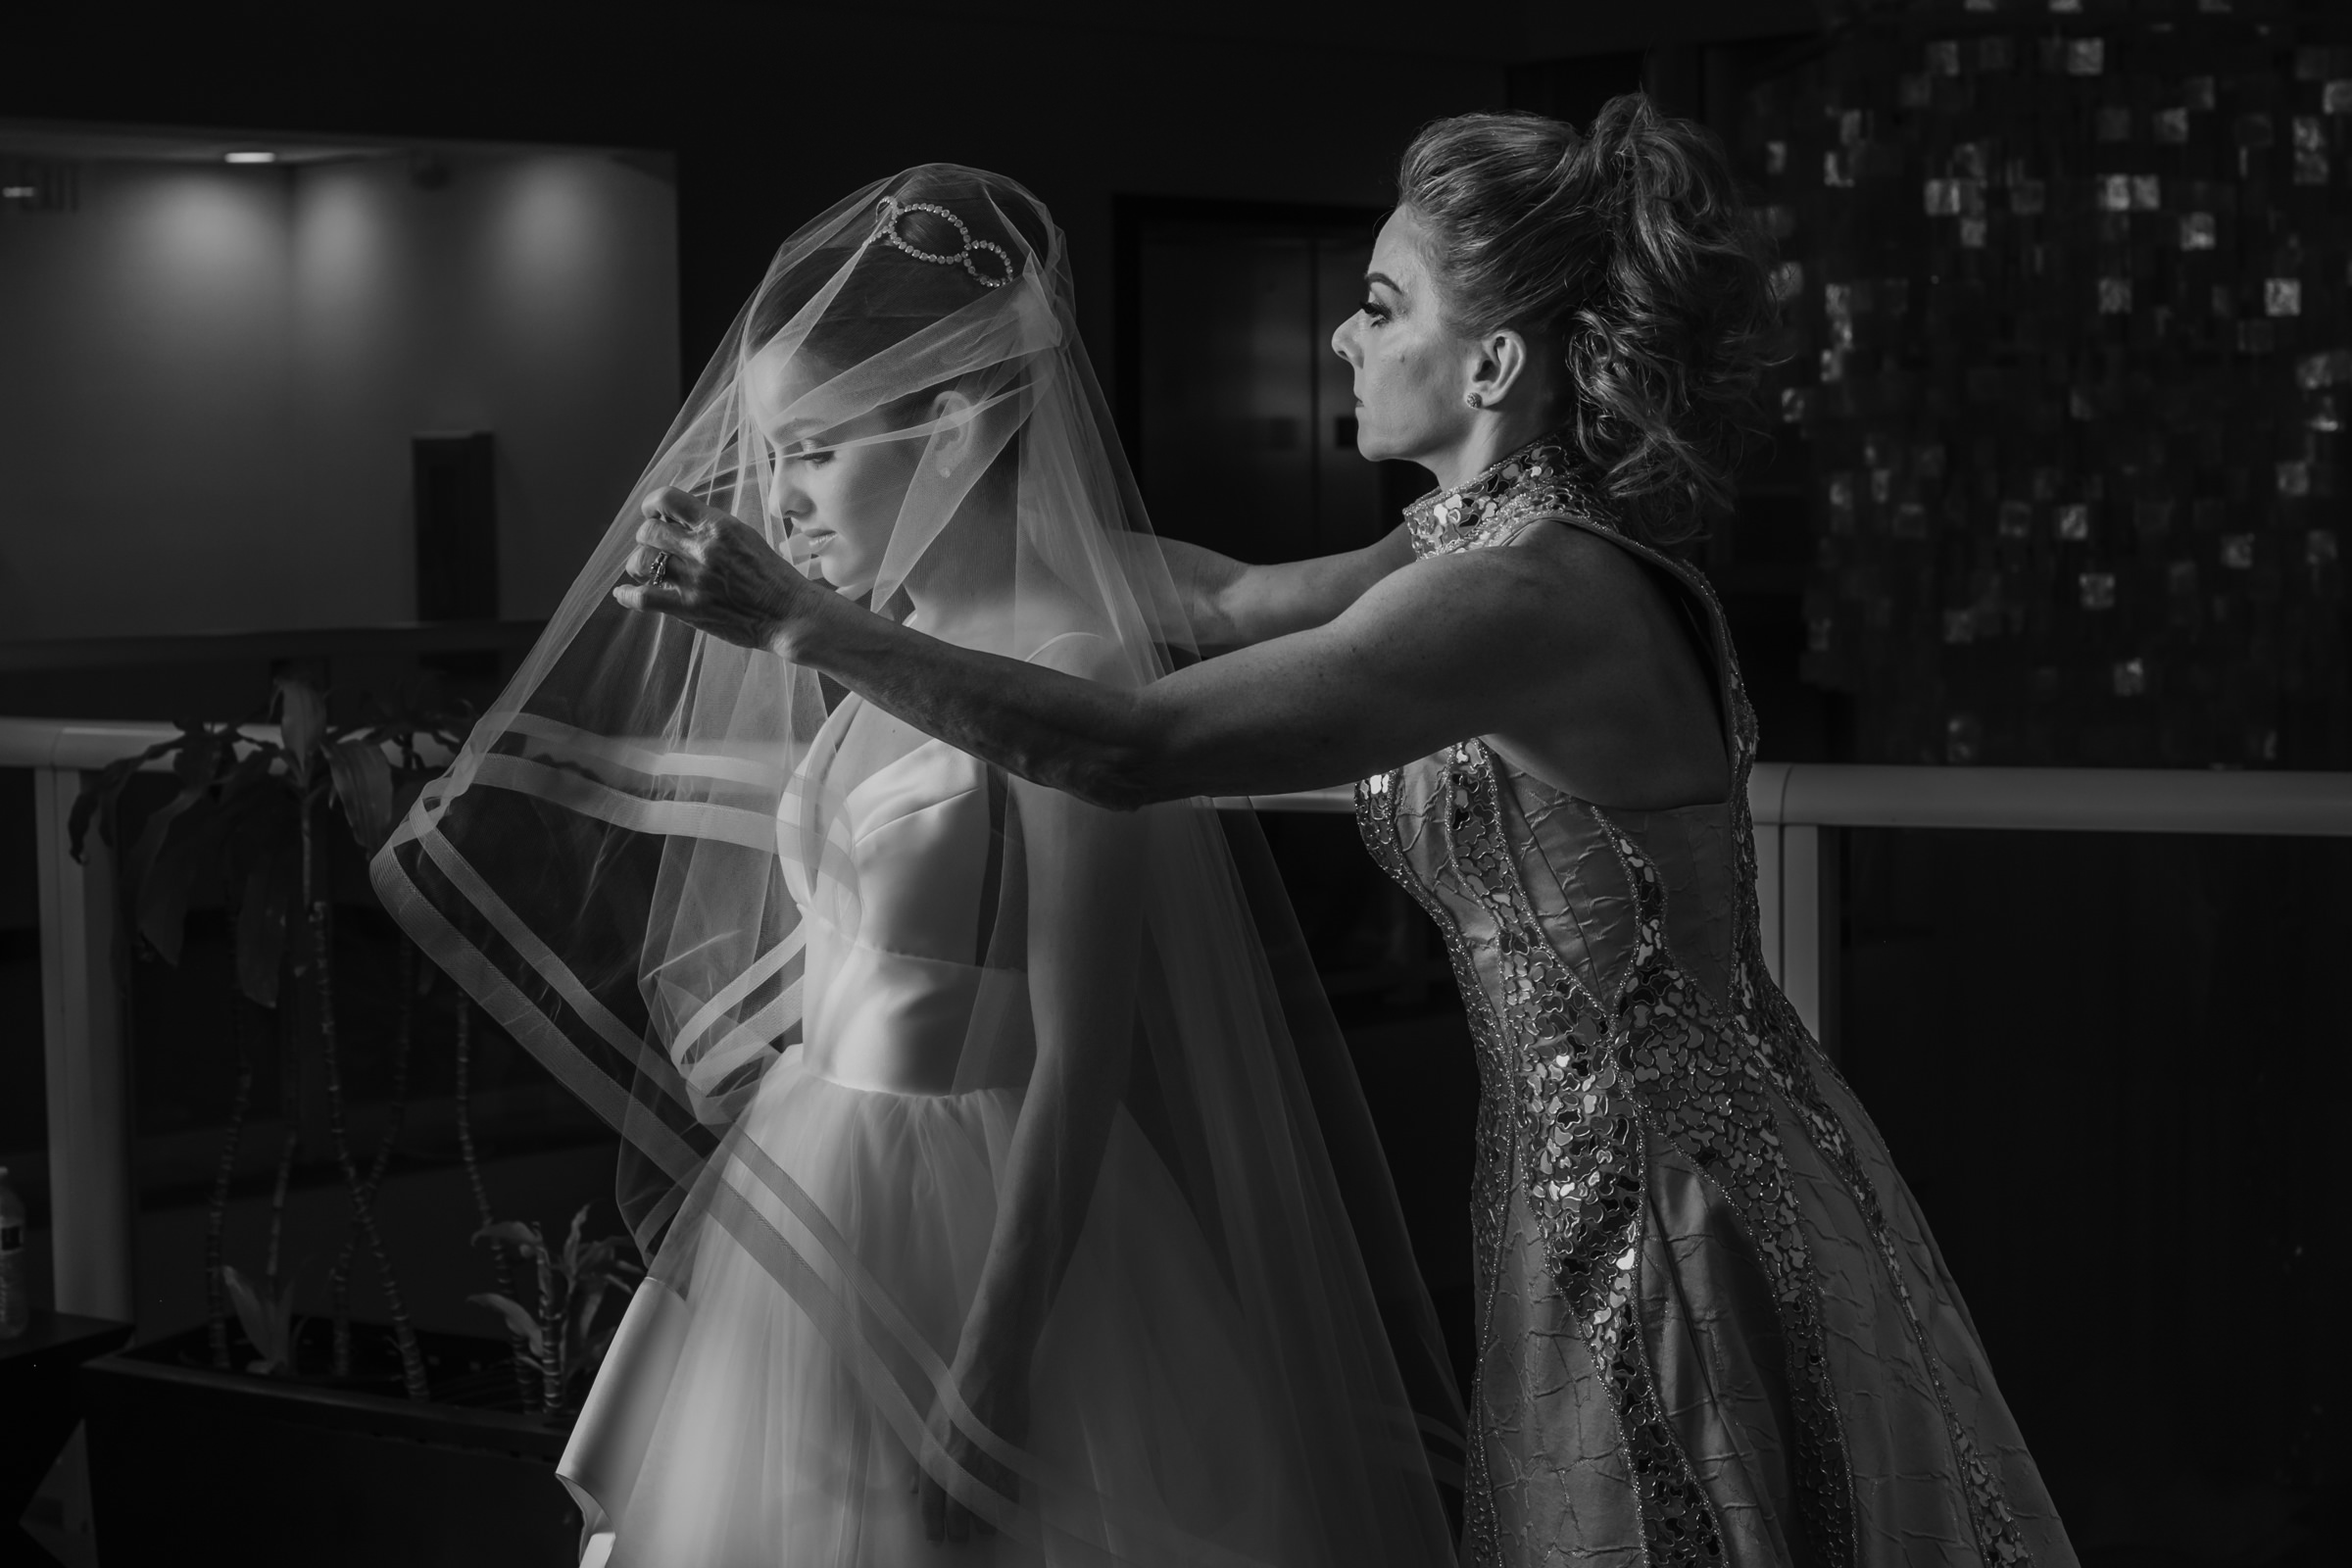 Mother adjusts her daughters veil - photo by El Marco Rojo